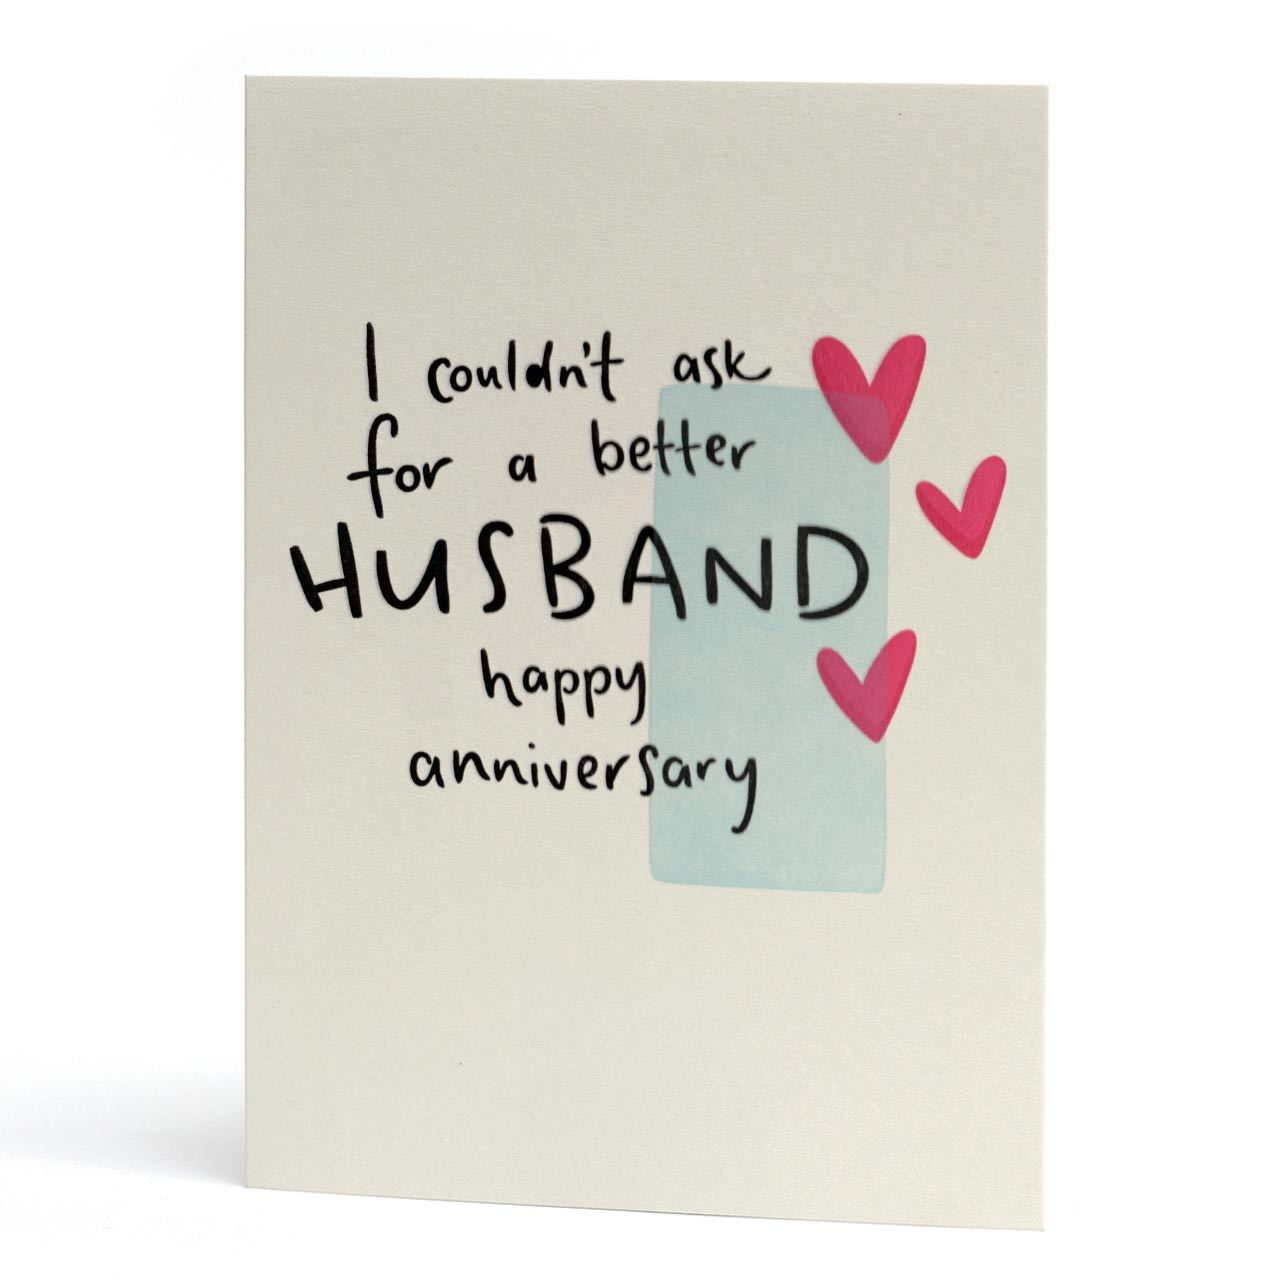 Couldn't Ask For A Better Husband Letterpress Anniversary Card